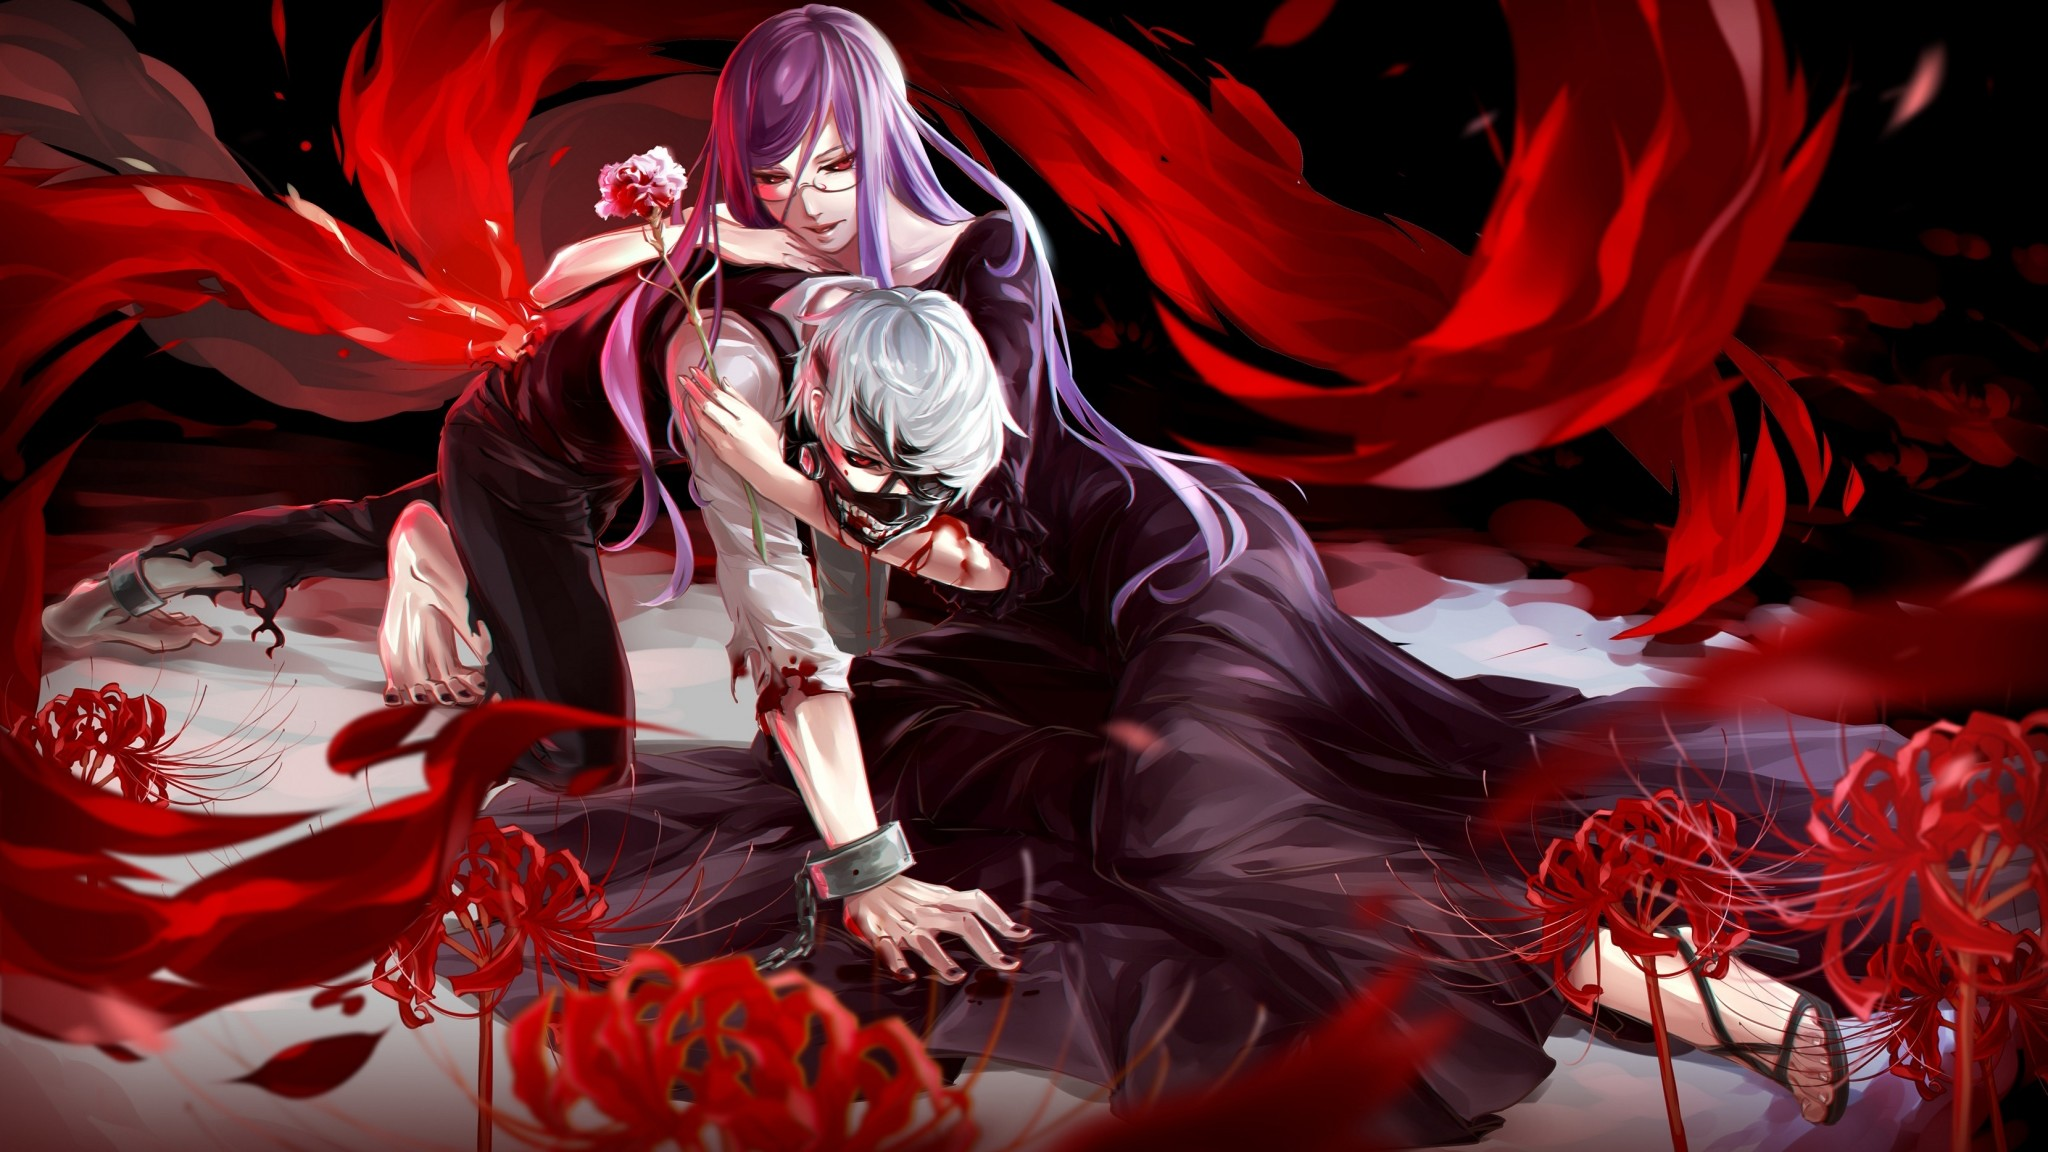 Download Tokyo Ghoul Amazing Anime Christmas Wallpaper In Many Resolutions